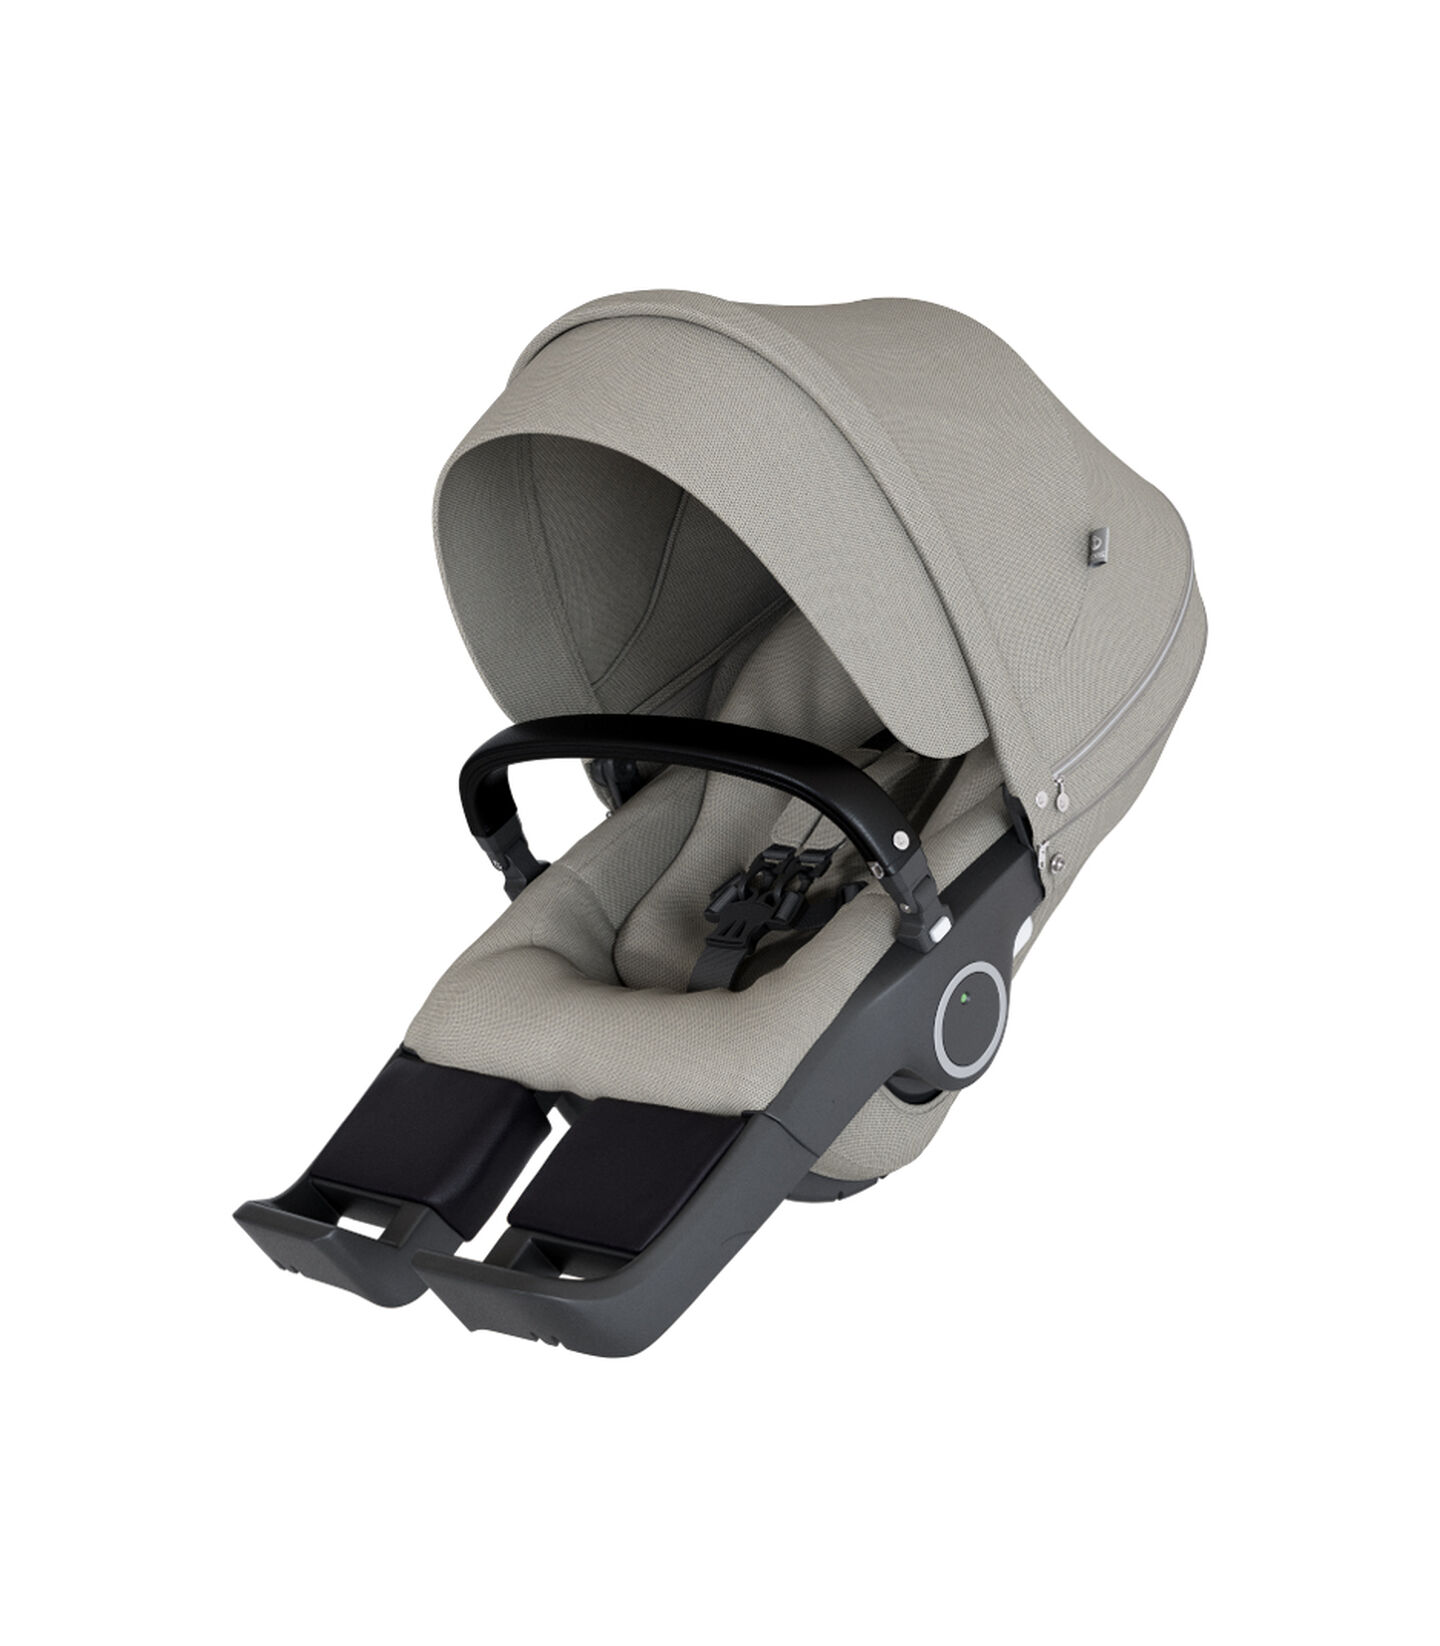 Stokke® Stroller Seat Complete Brushed Grey, Brushed Grey, mainview view 1